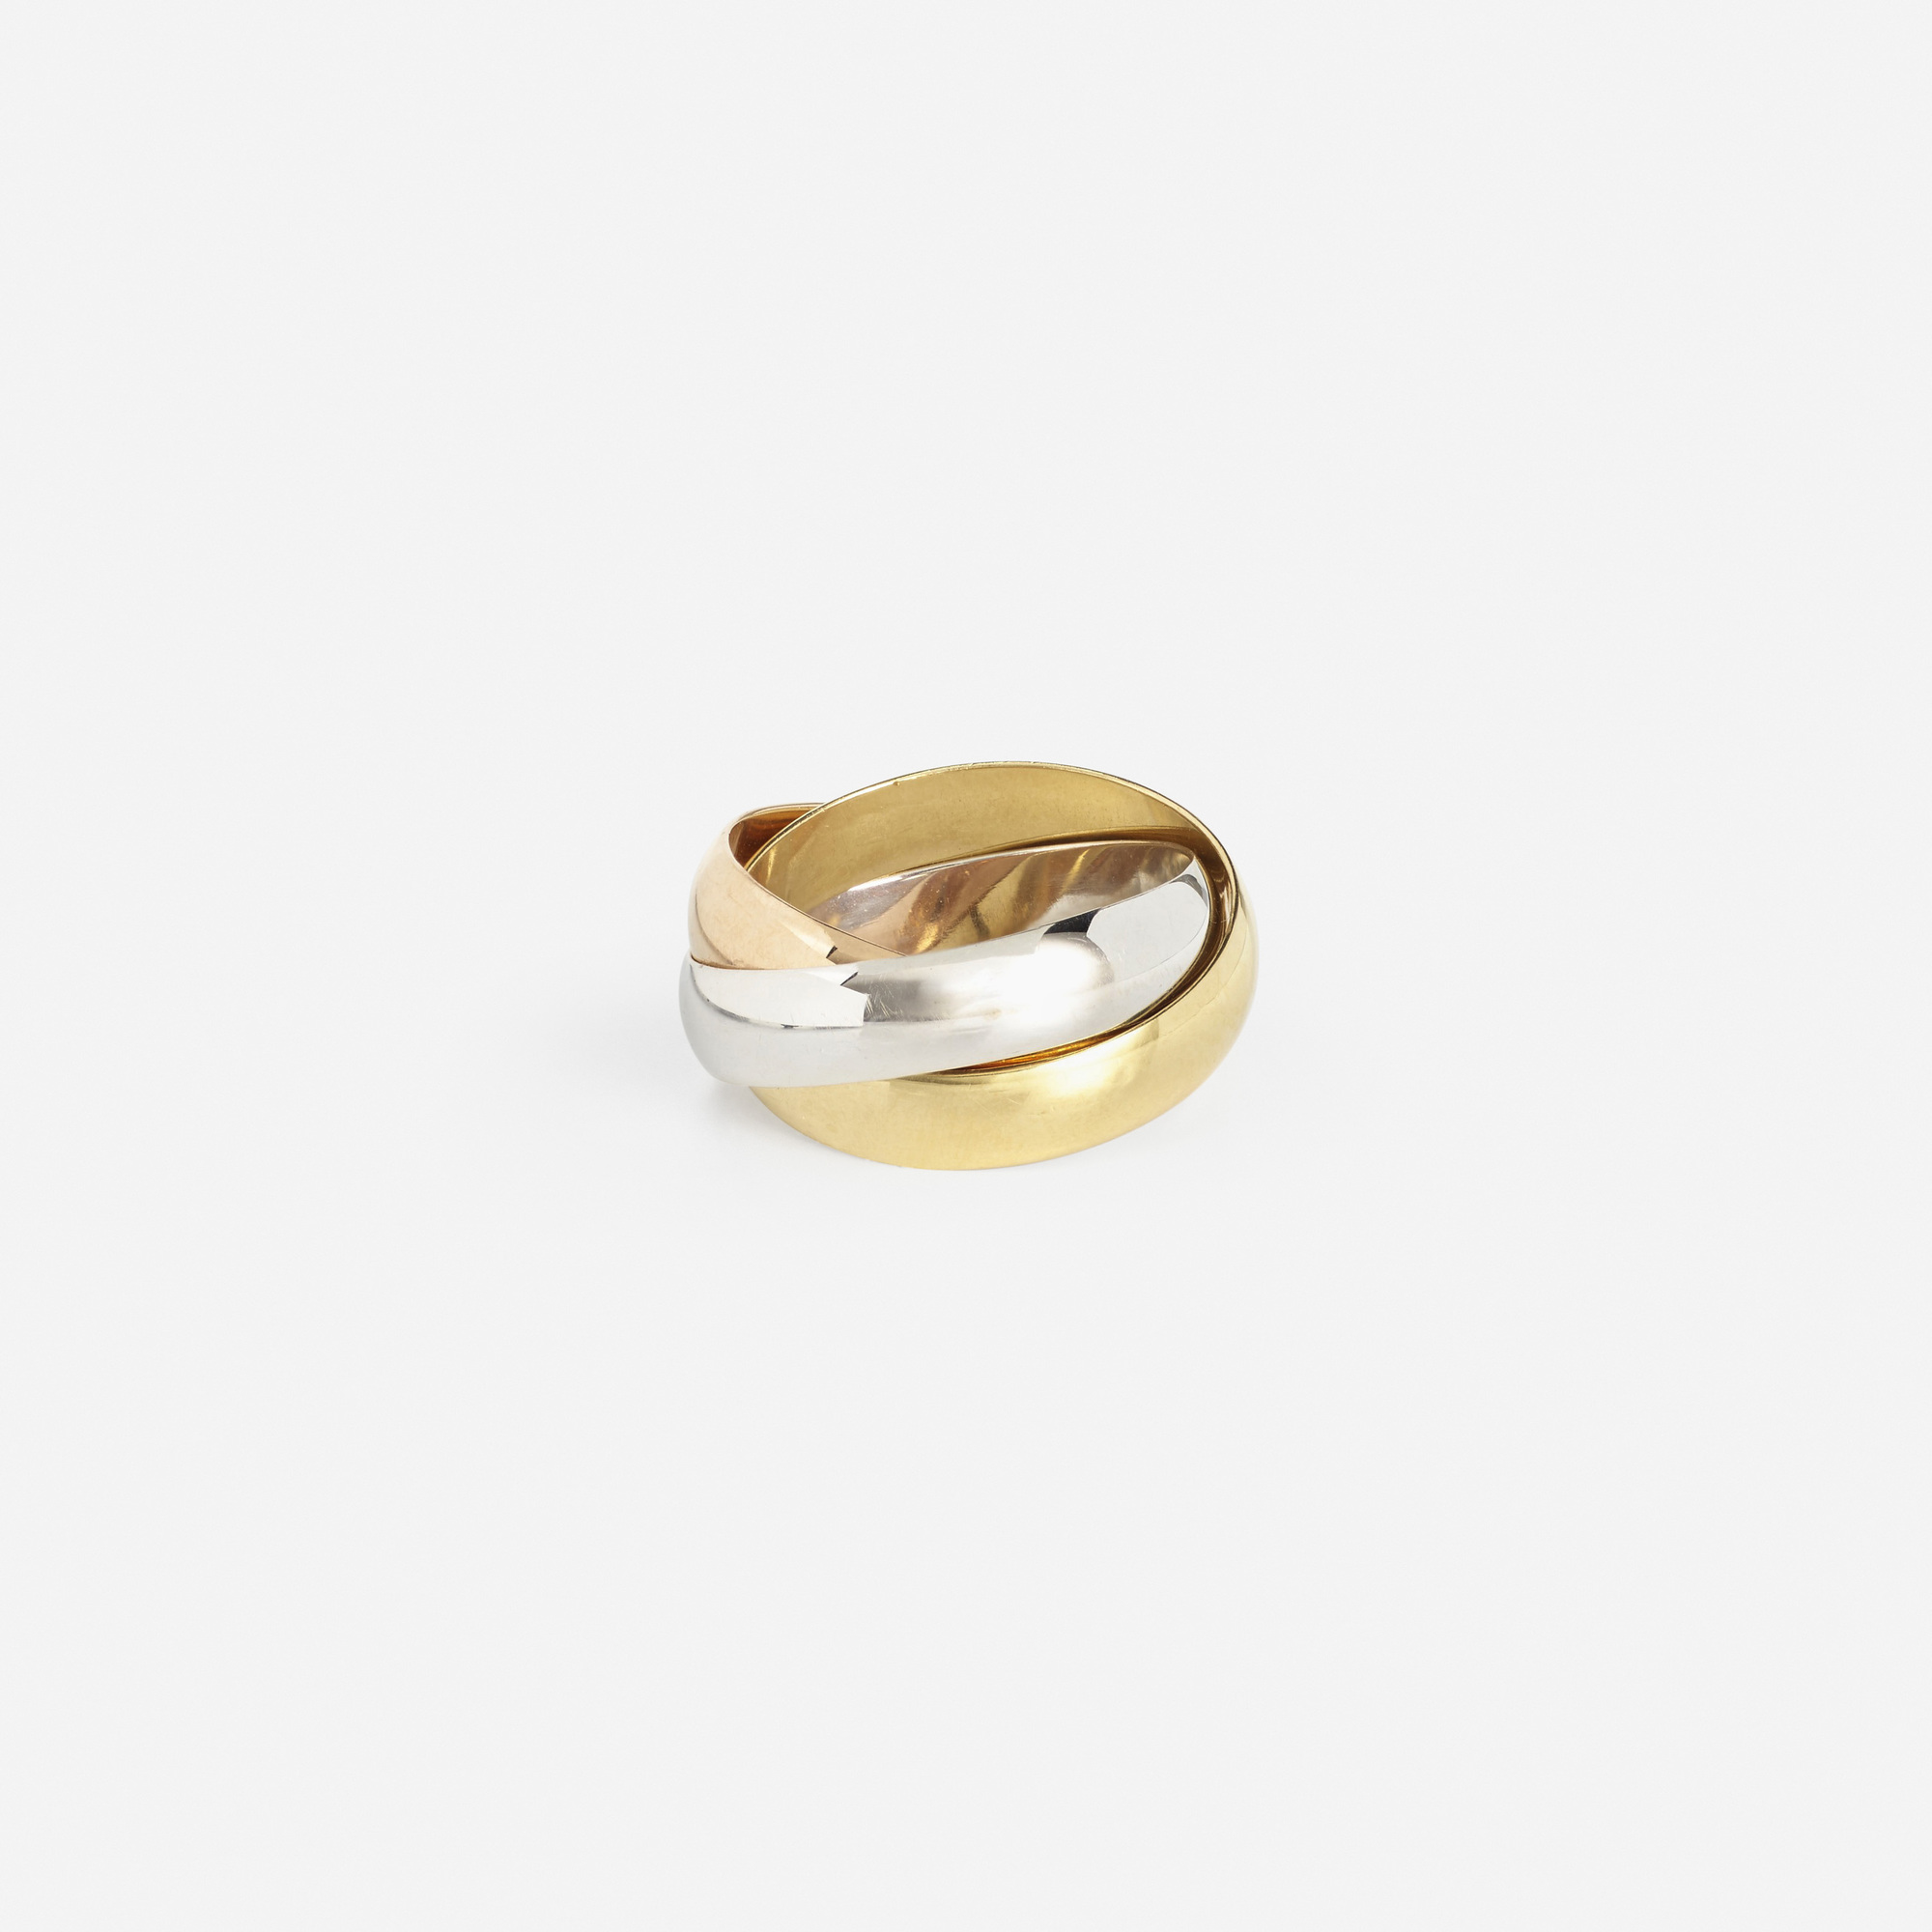 293: Cartier / A gold Trinity ring (2 of 2)